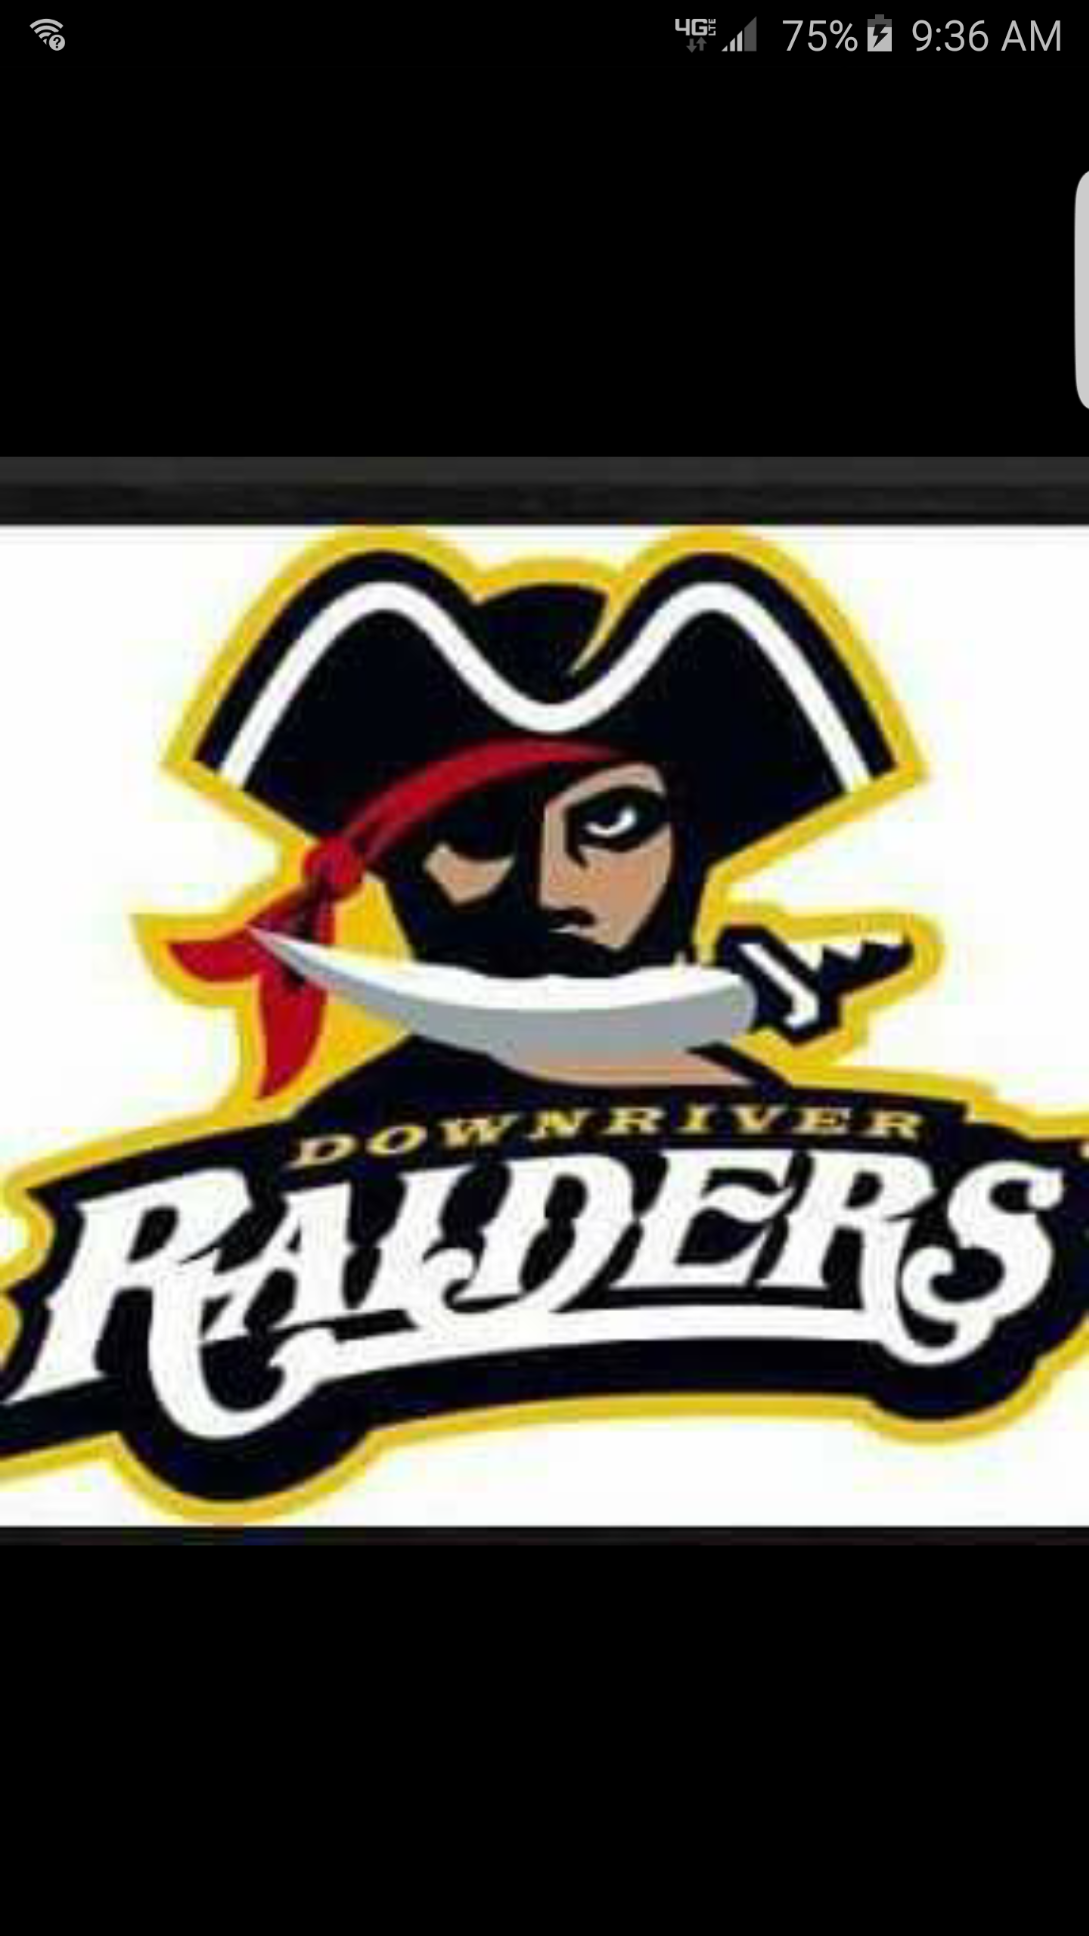 Downriver Raiders